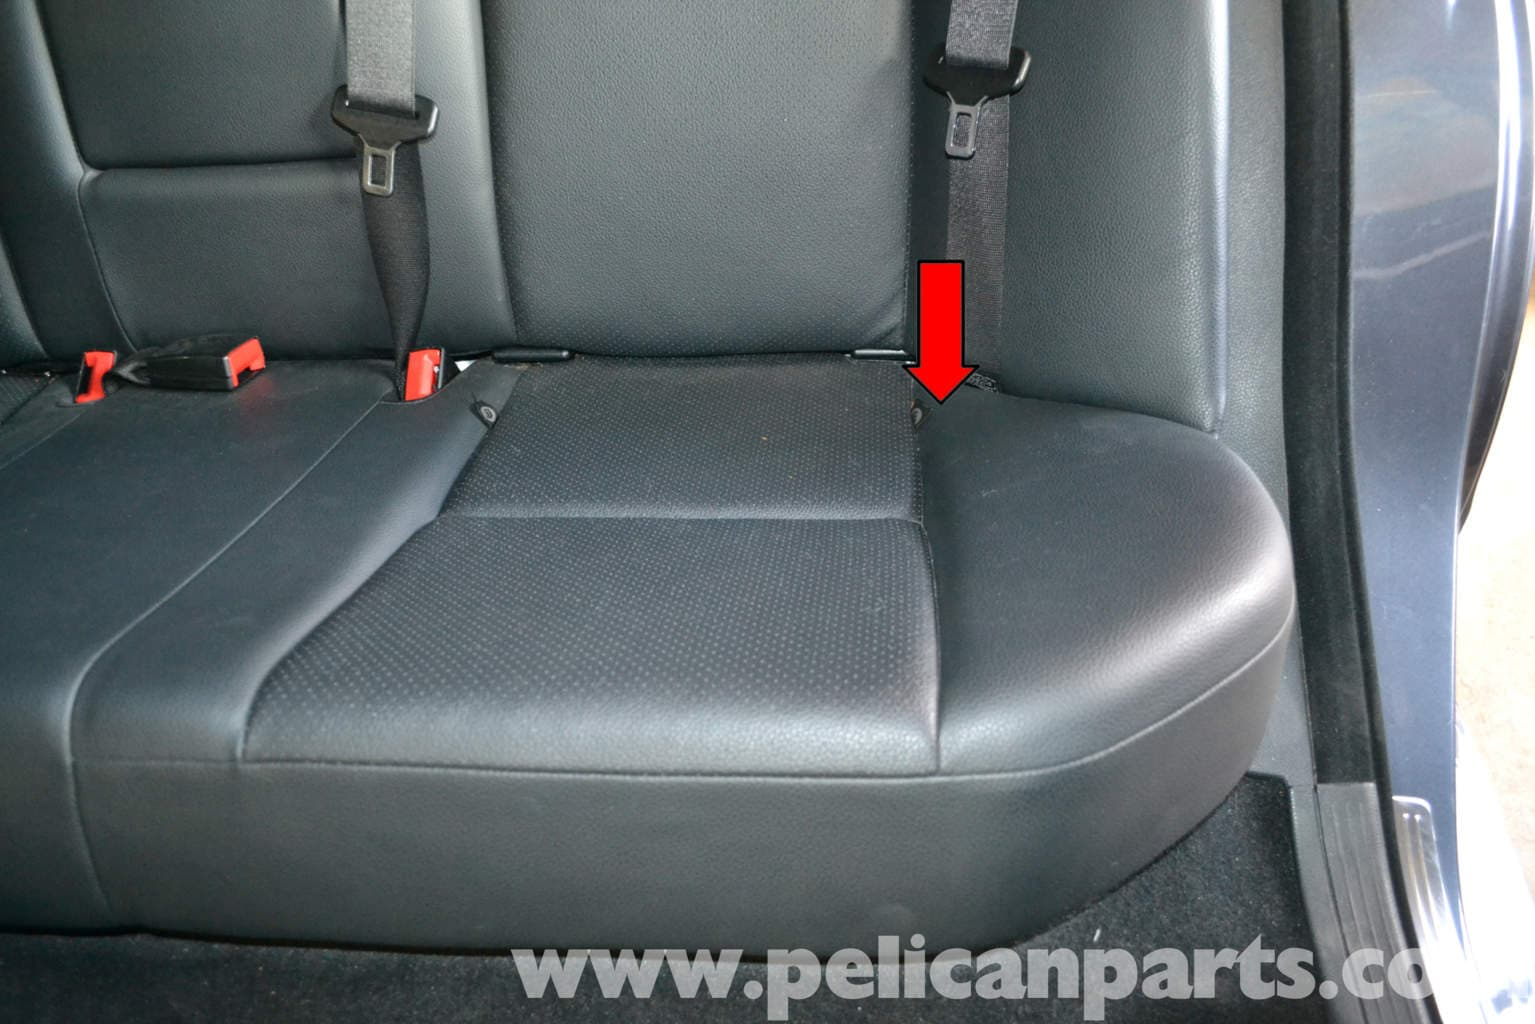 Mercedes benz w204 seat removal 2008 2014 c250 c300 for Mercedes benz replacement seat covers